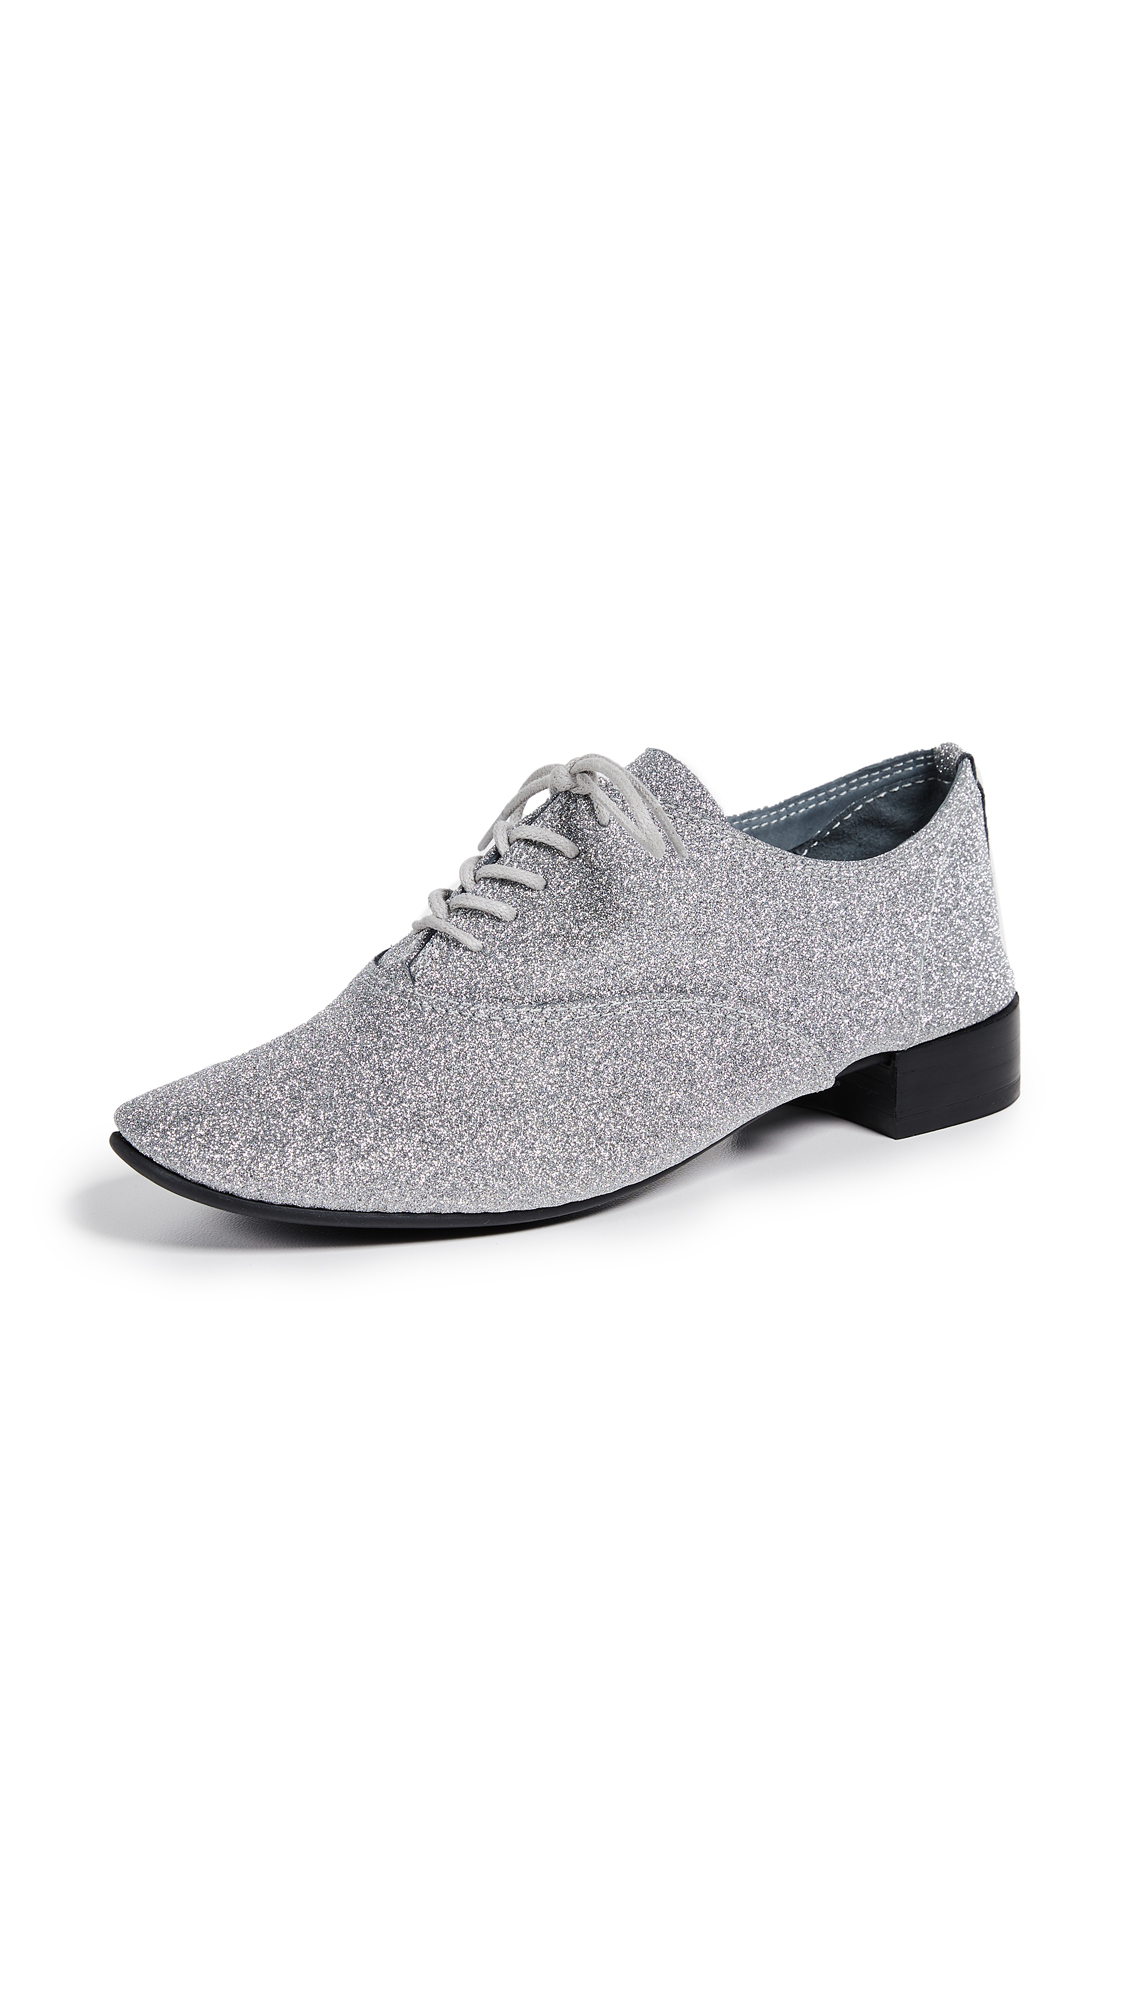 Black Argent Charlotte Oxford Shoes, Silver/Glitter